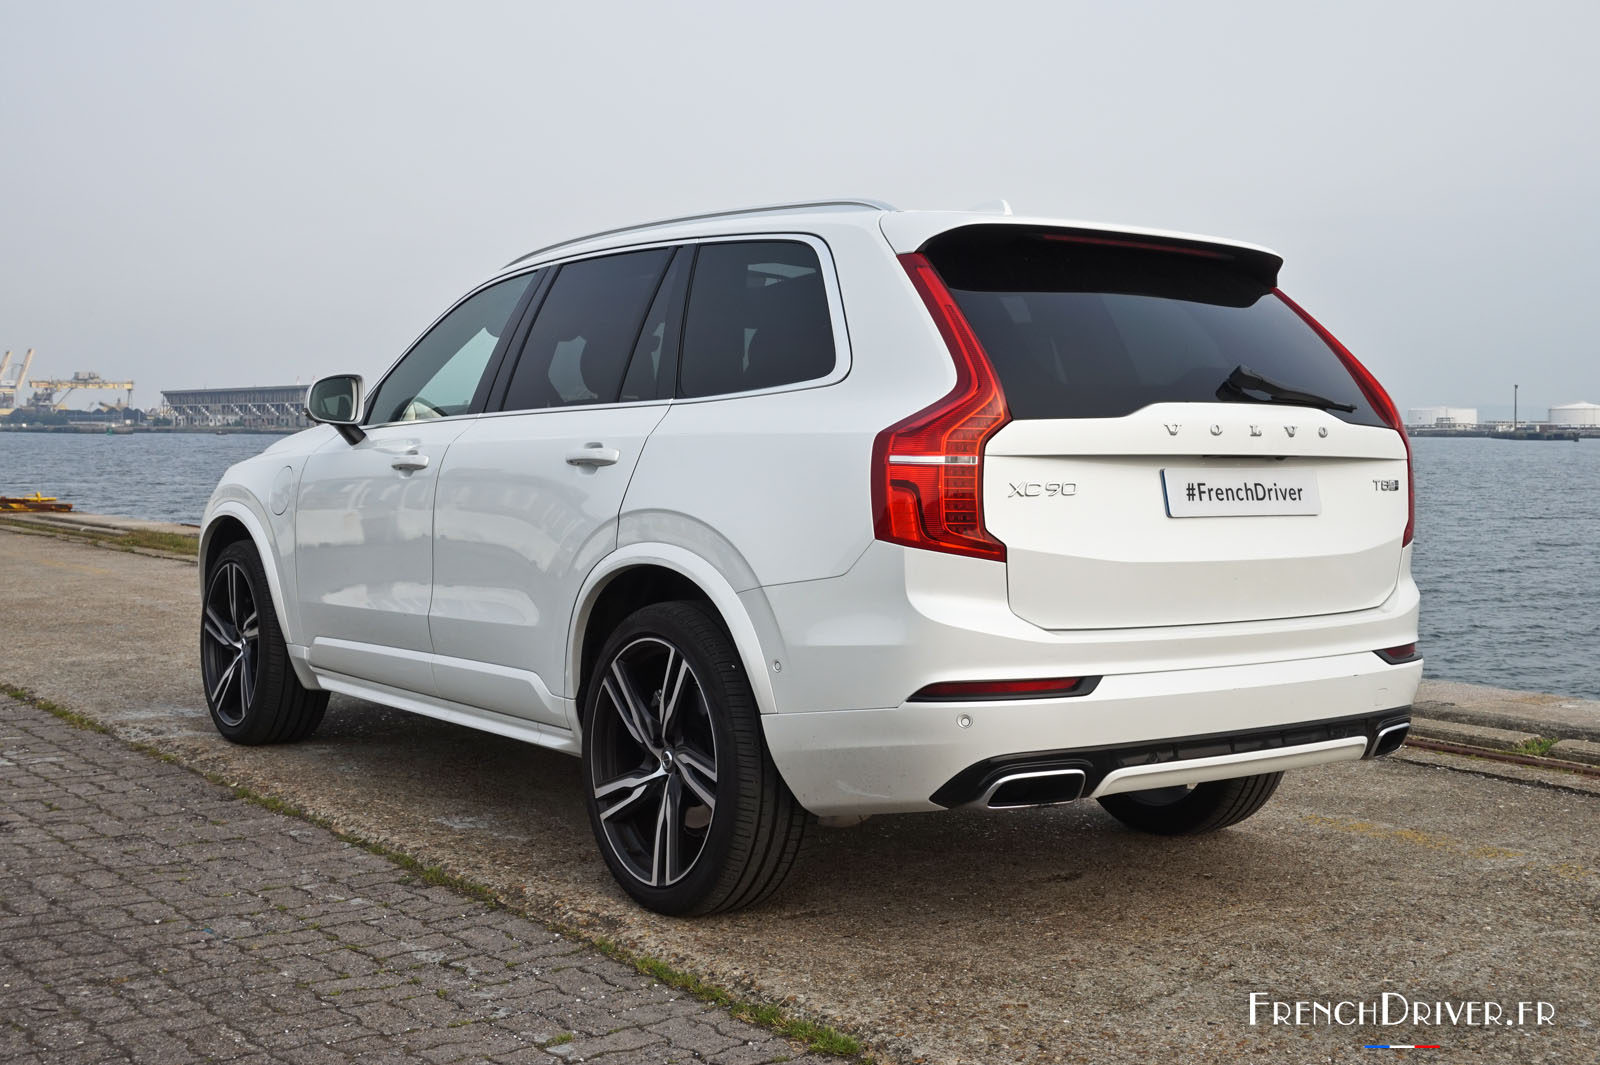 essai du volvo xc90 t8 puissamment technologique french driver. Black Bedroom Furniture Sets. Home Design Ideas